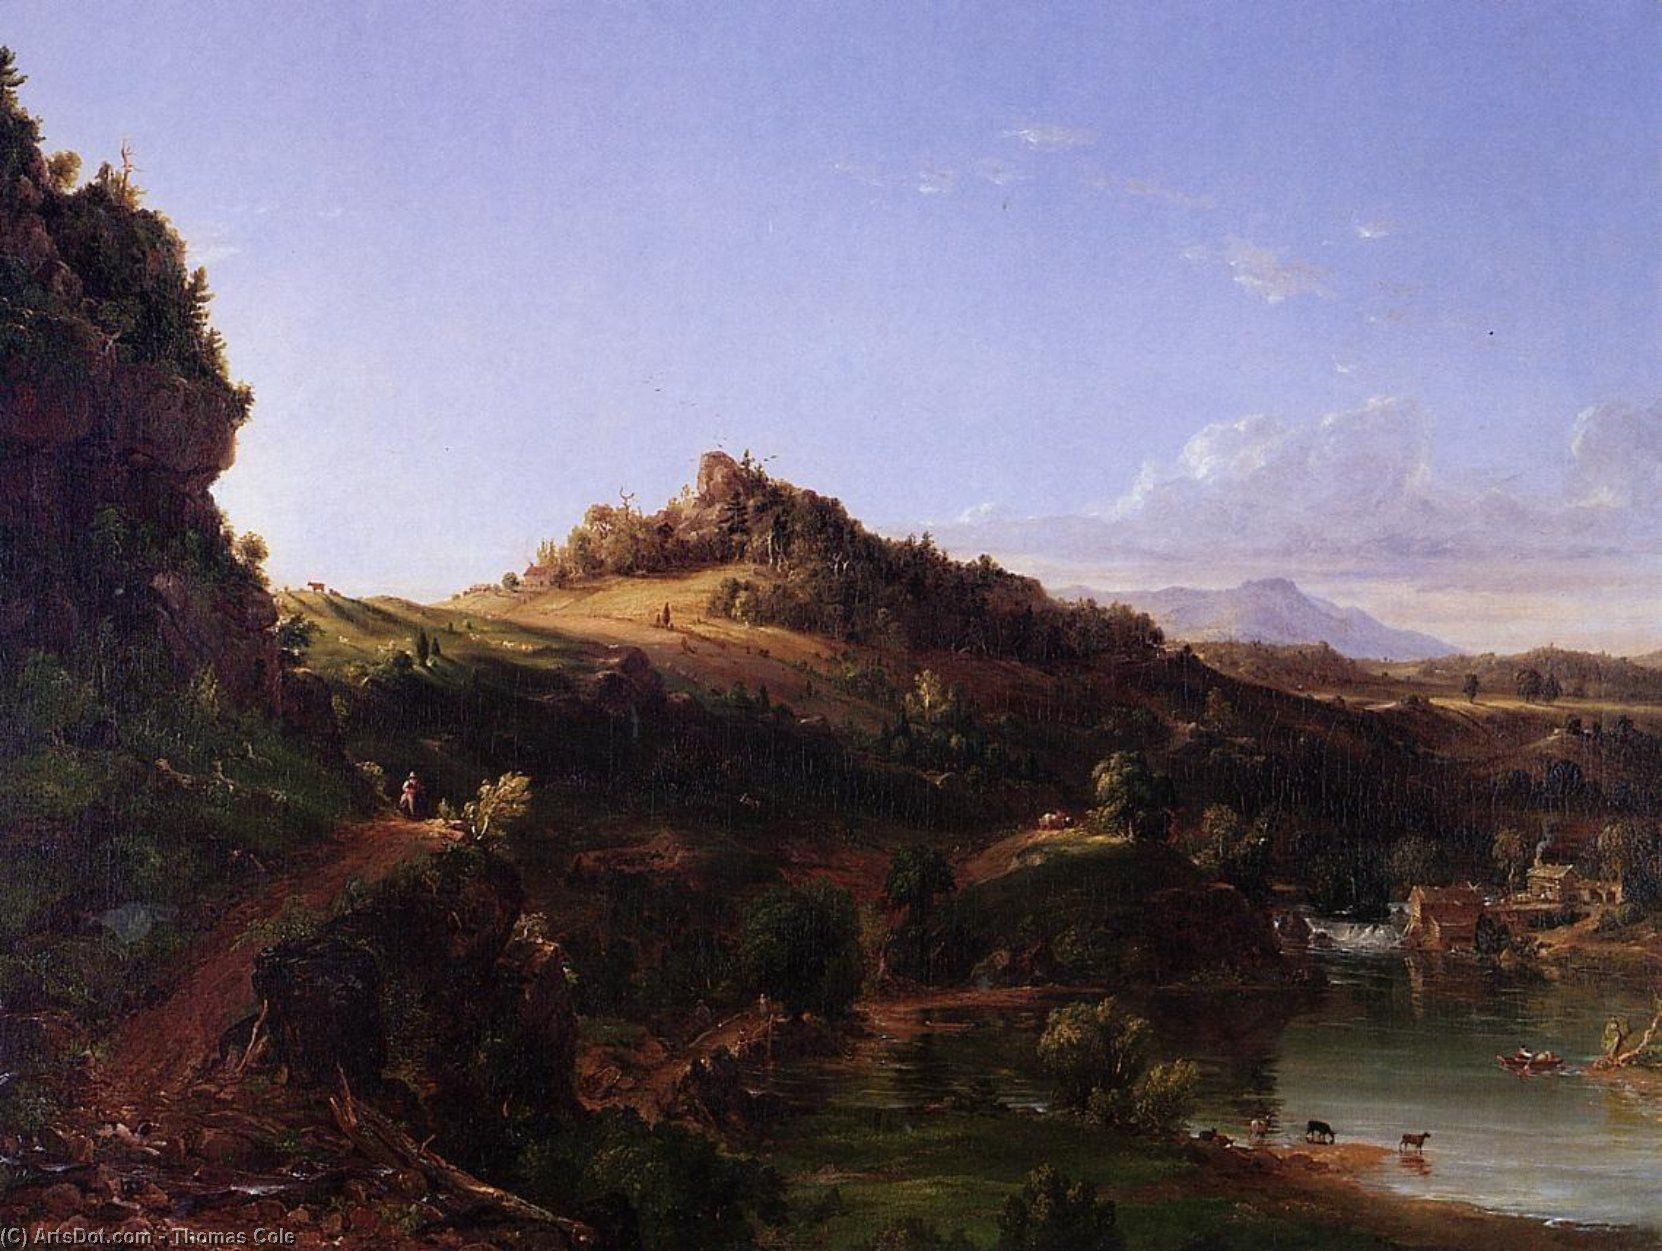 Catskill Scenery, Oil On Canvas by Thomas Cole (1801-1848, United Kingdom)